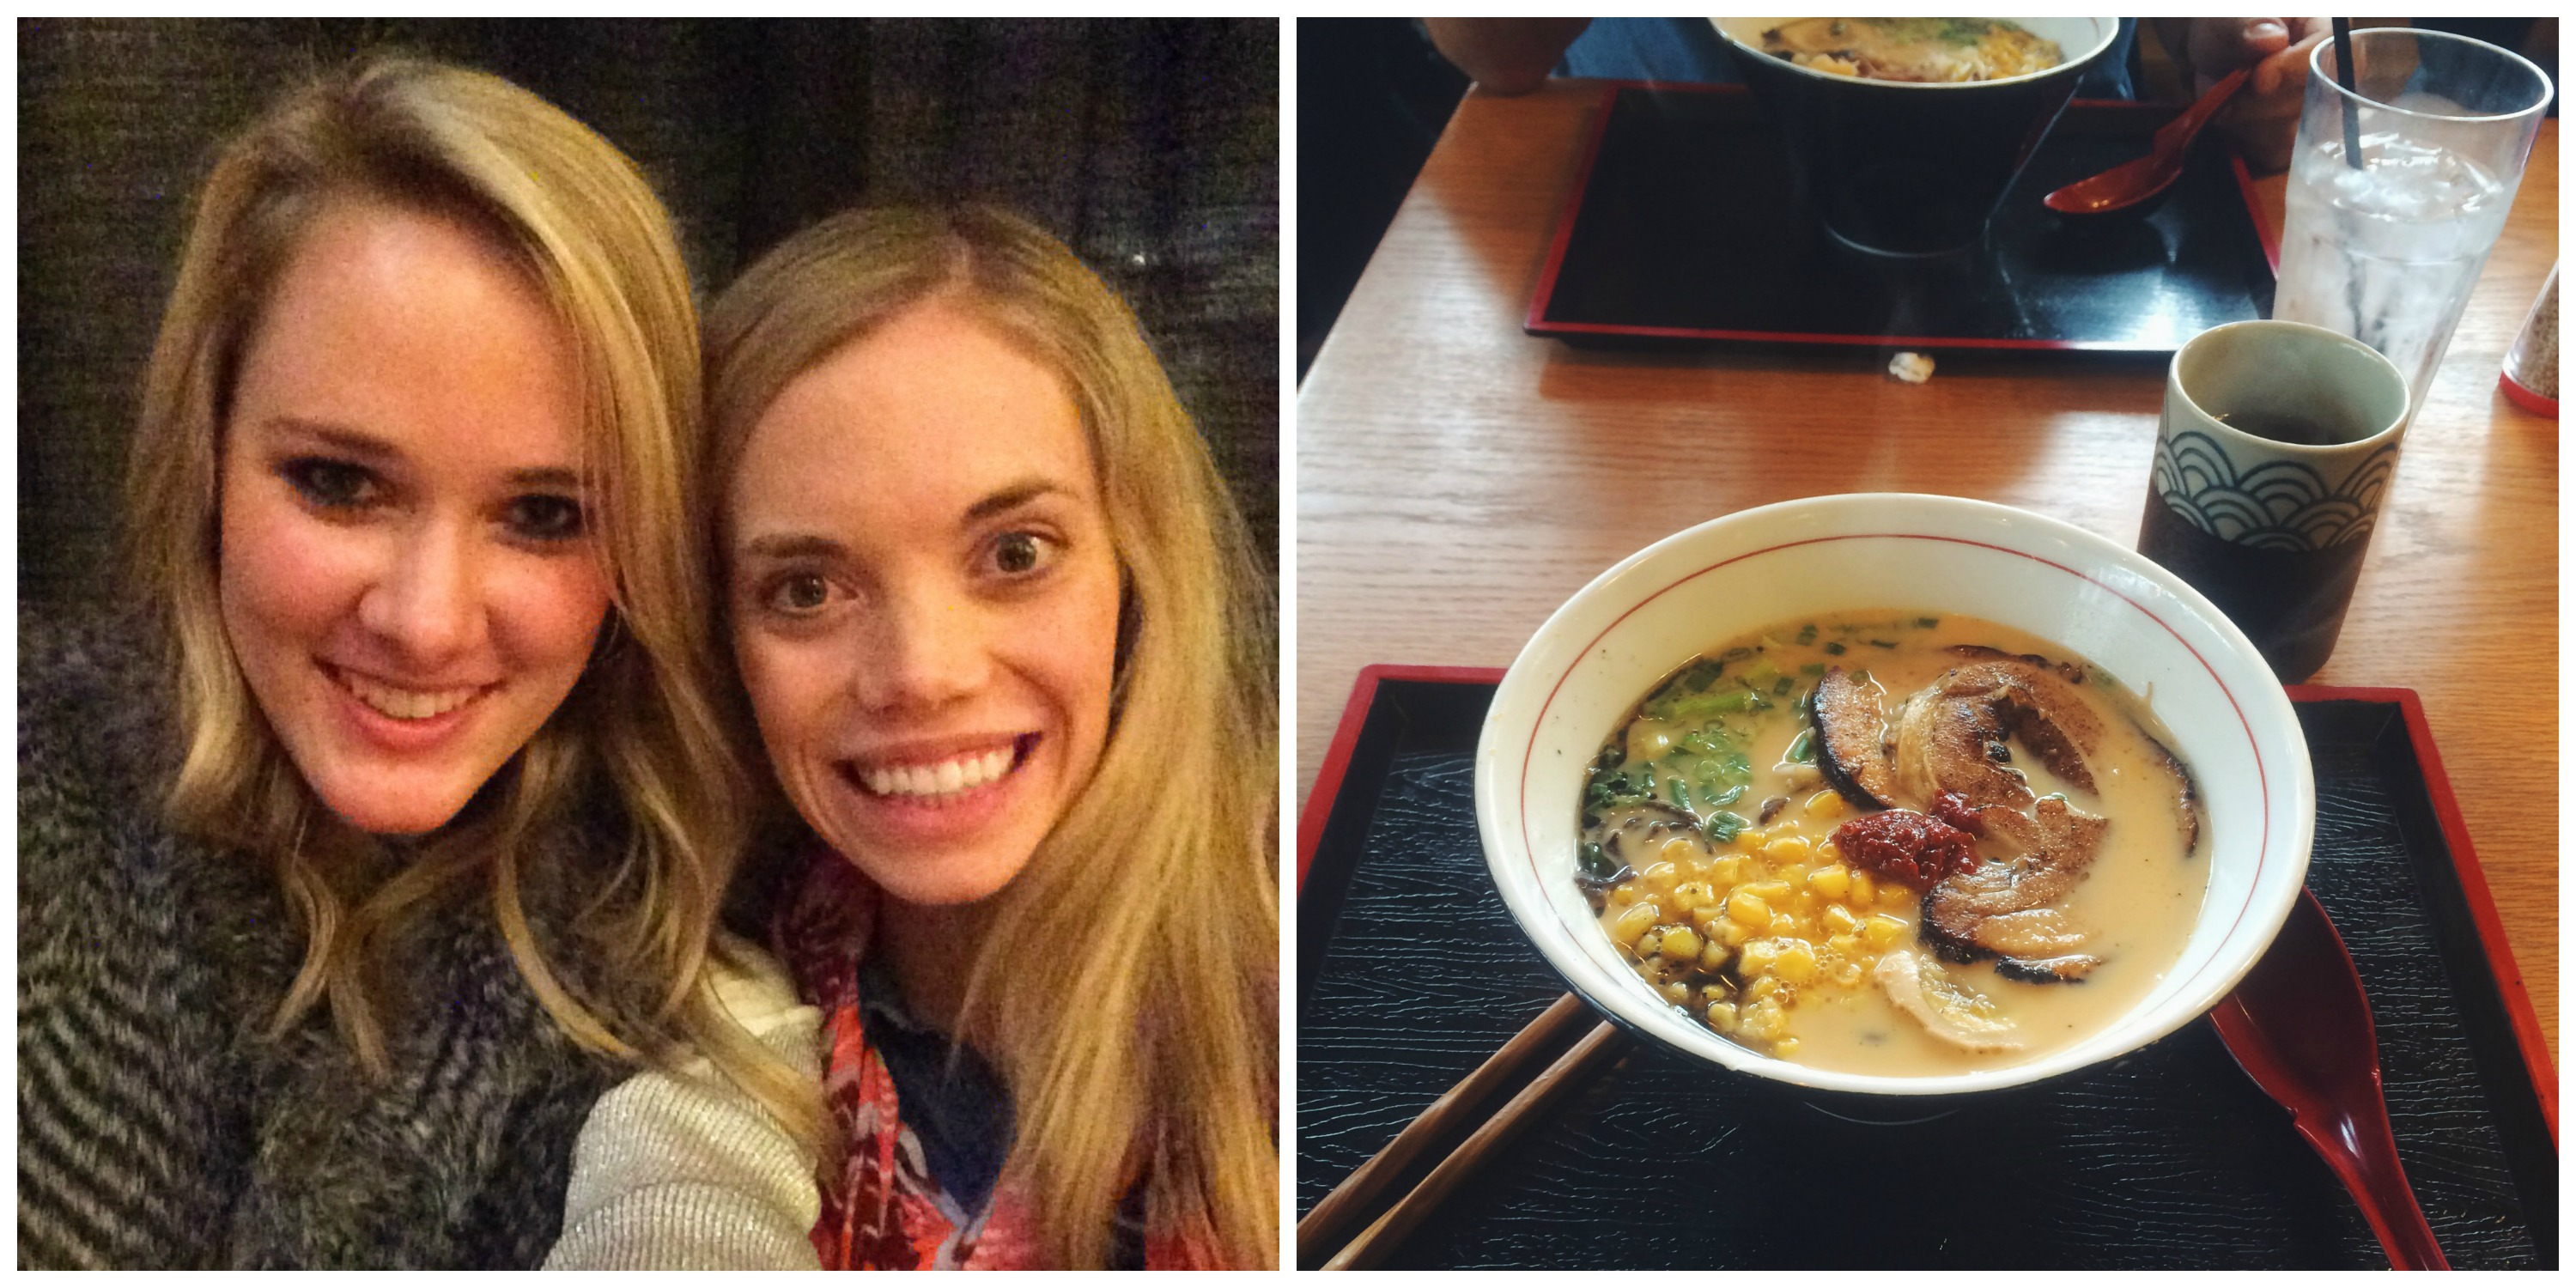 Work Christmas Party + Ramen Date